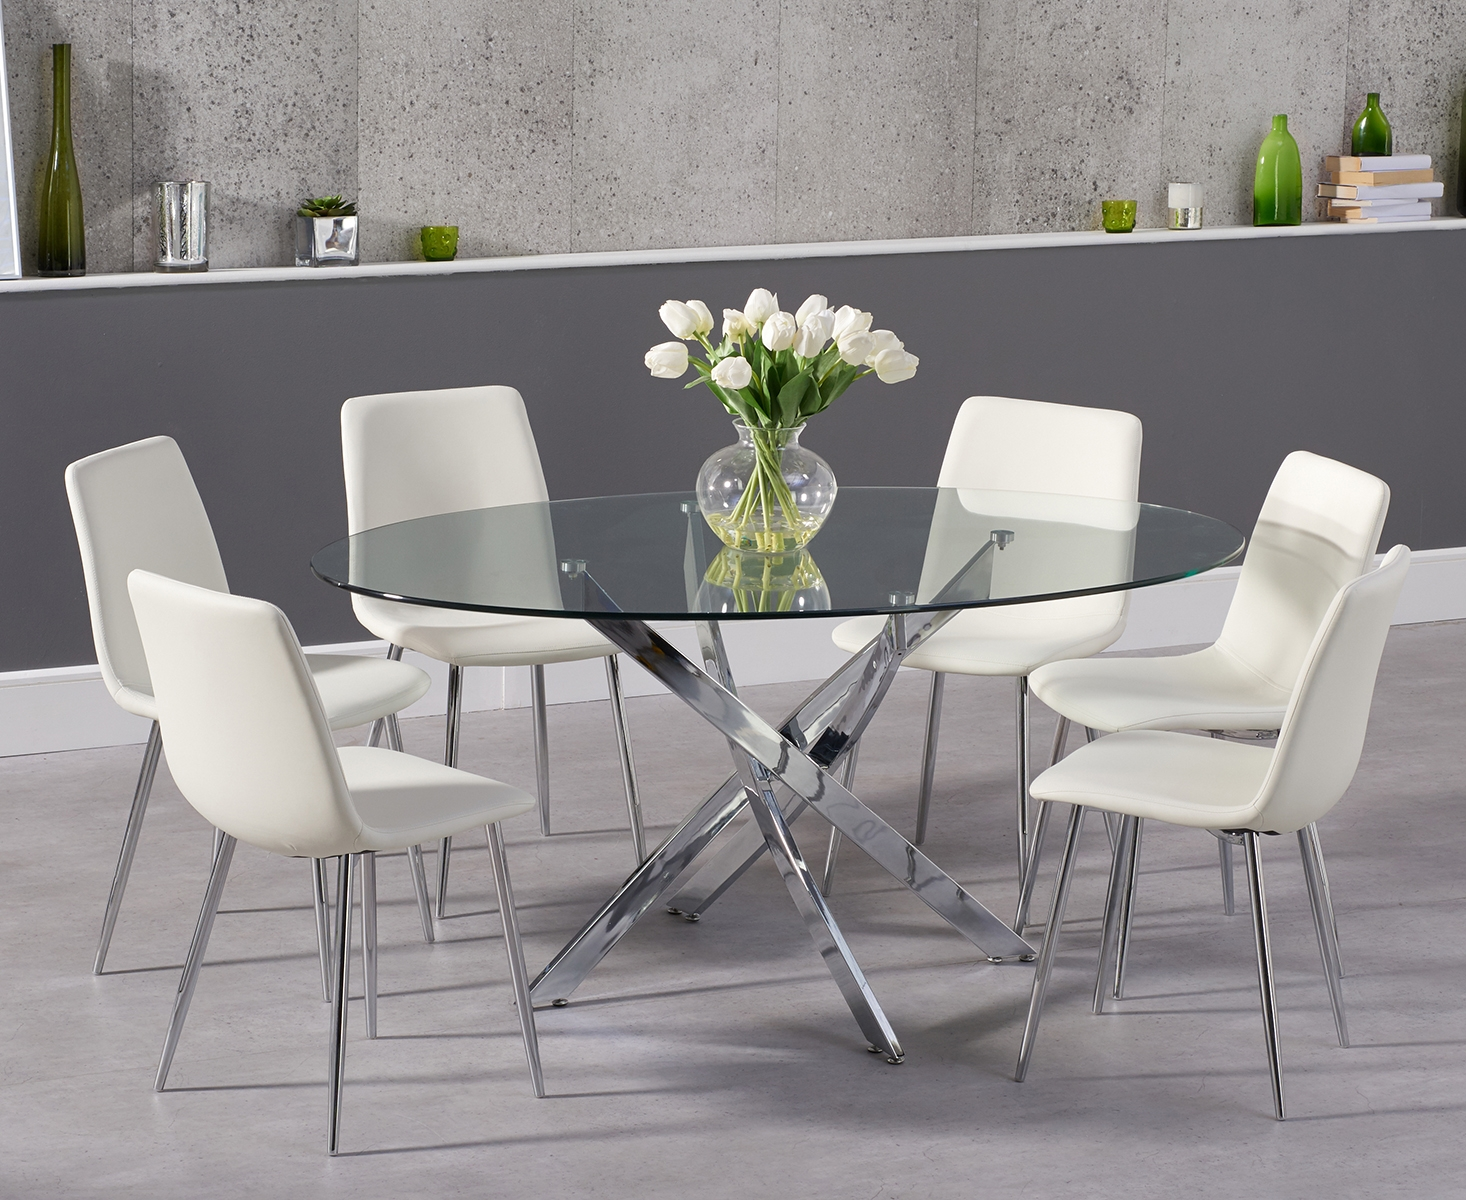 Denver 165cm oval glass dining table with helsinki faux leather chairs